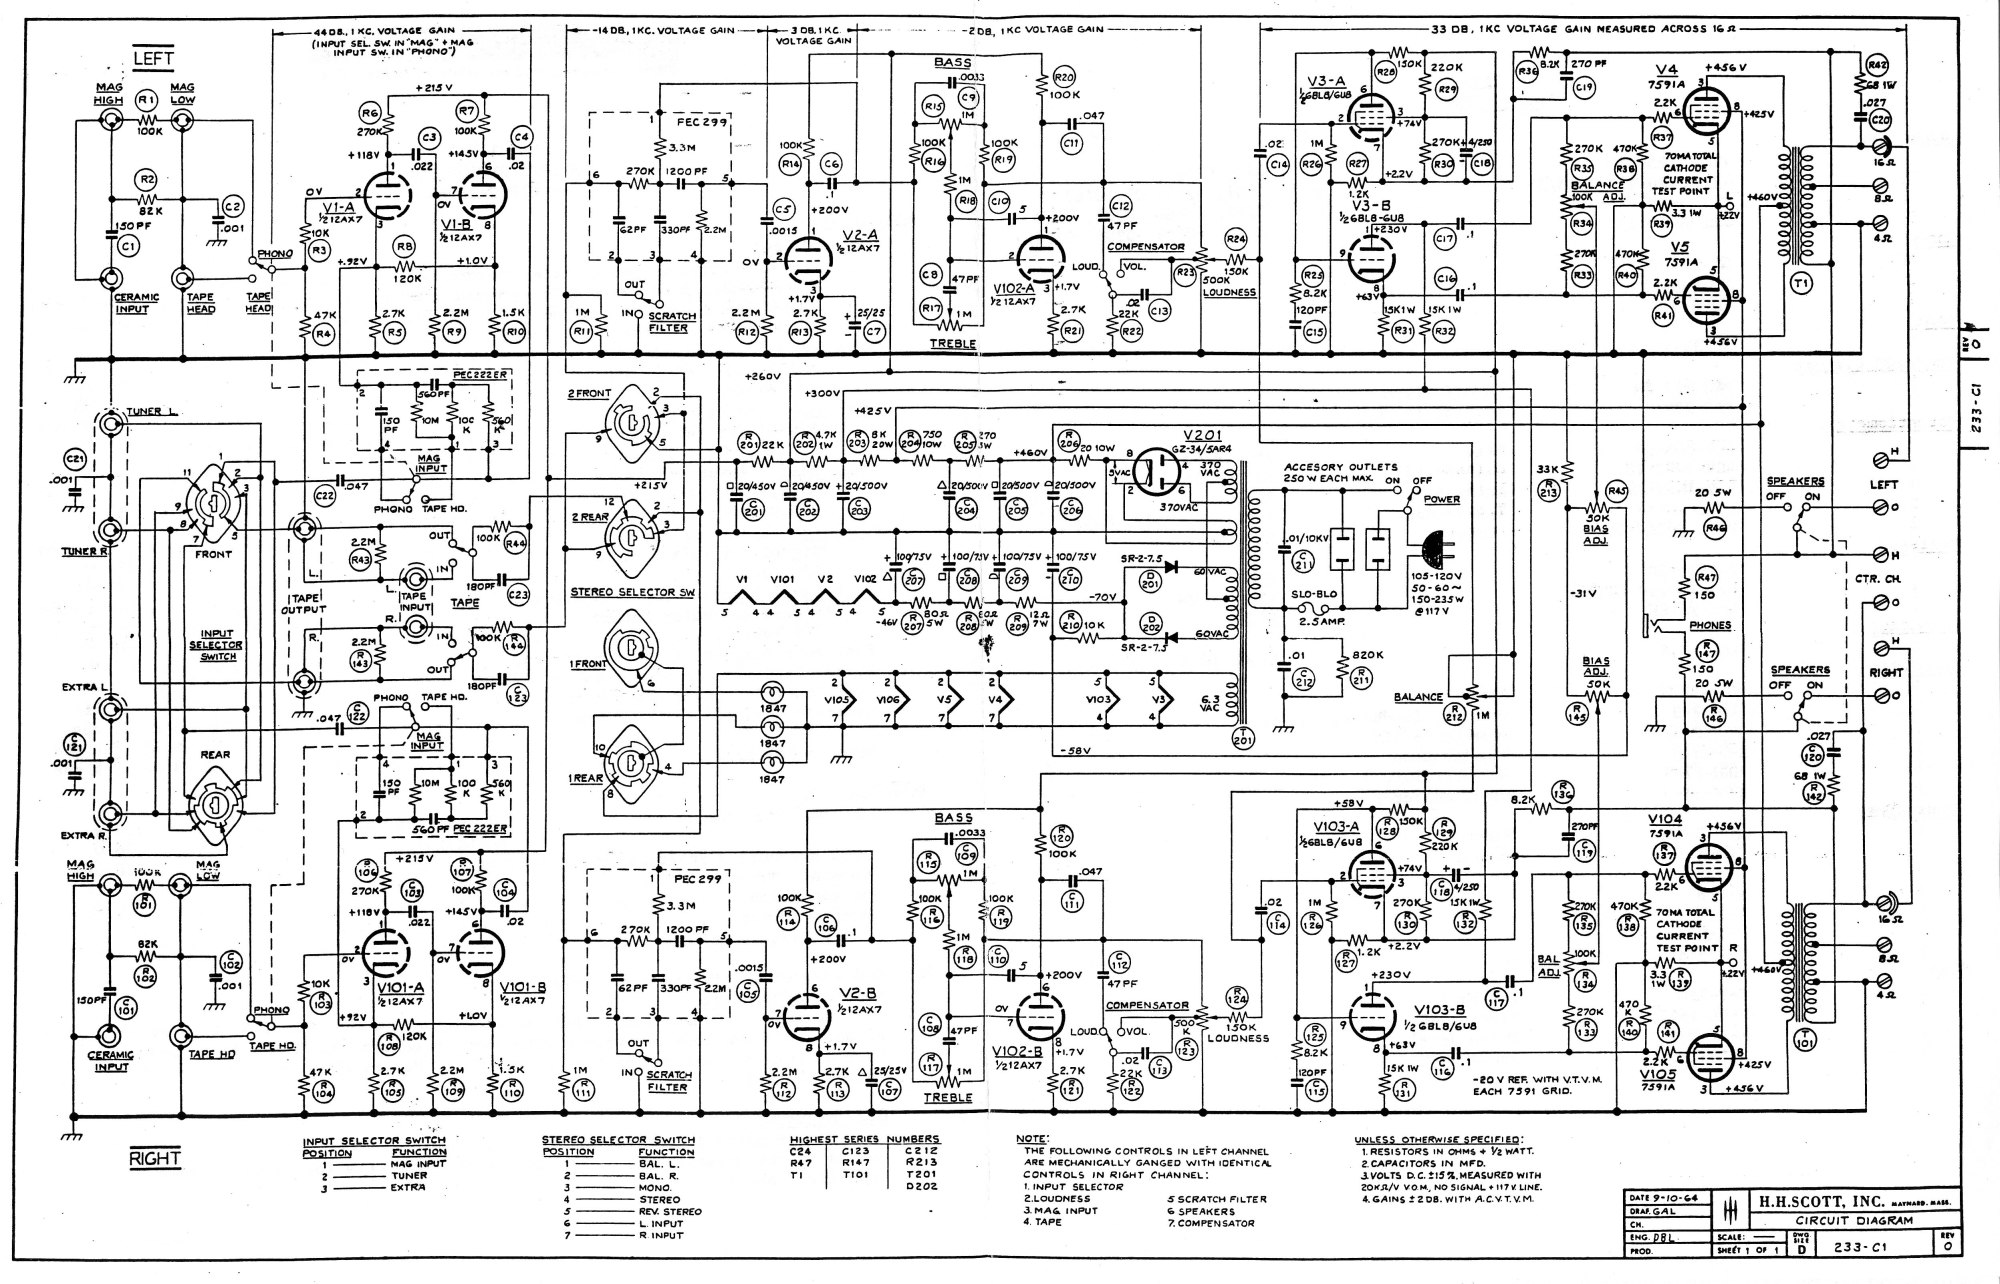 hight resolution of 296 schematic 296 owners guide